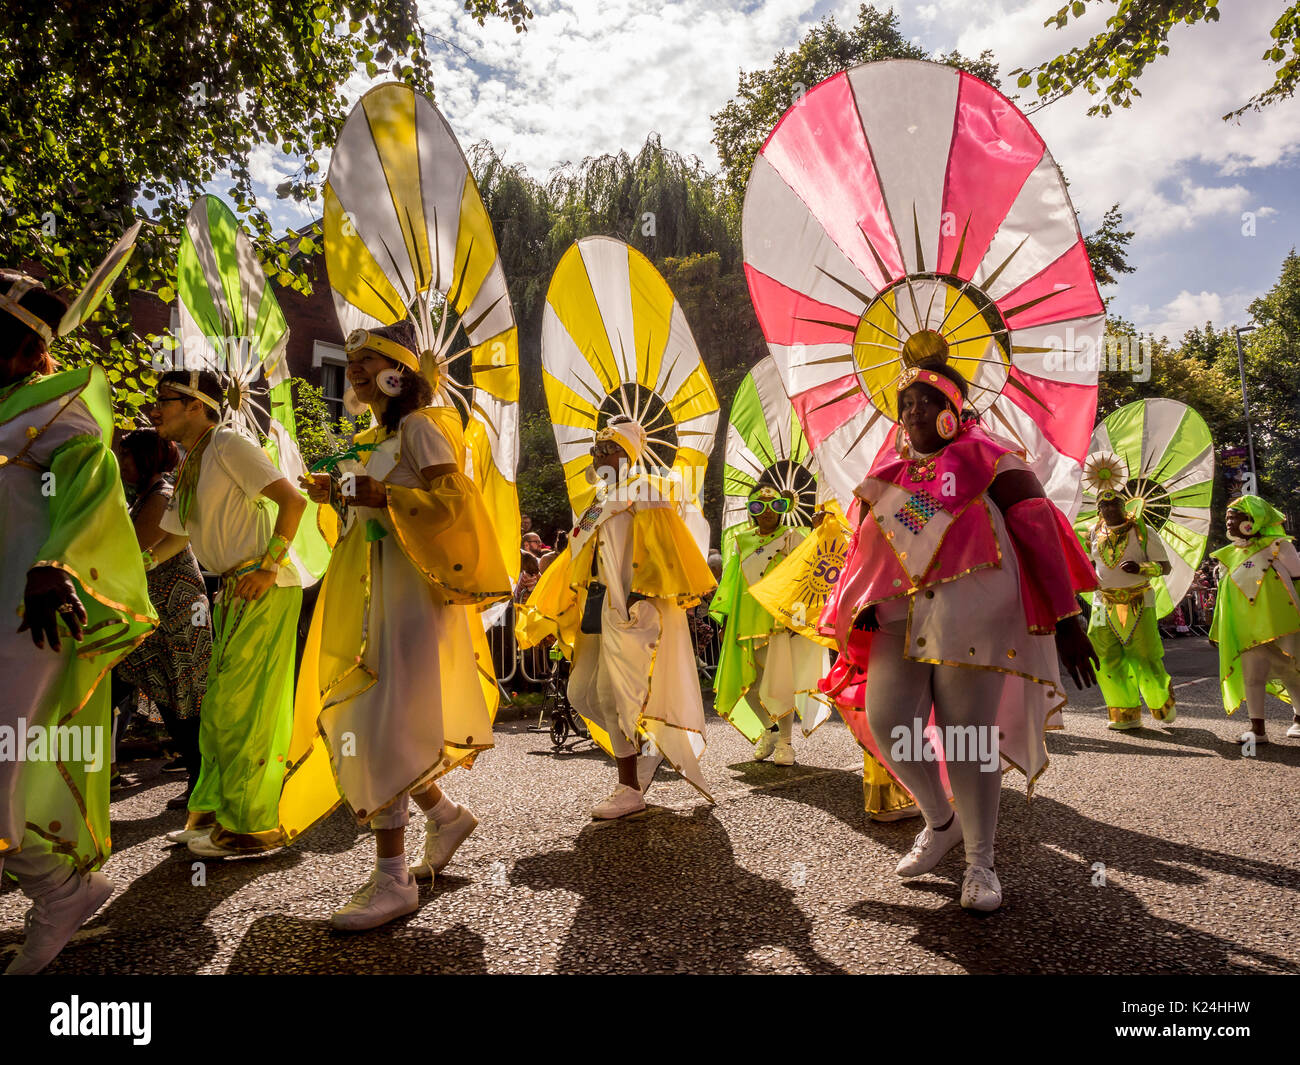 Leeds, UK. 28th August, 2017.  The 50th Leeds West Indian Carnival at Potternewton Park. The carnival was the first in the UK, in 1967, to incorporate all three essential elements of authentic West Indian carnival – costumes, music and a masquerade procession – it is Europe's longest running Caribbean carnival parade. The event incorporates a colourful procession through the streets, a live music stage and street food and is geared towards all ages and cultures. Photo Bailey-Cooper Photography/Alamy Live News - Stock Image